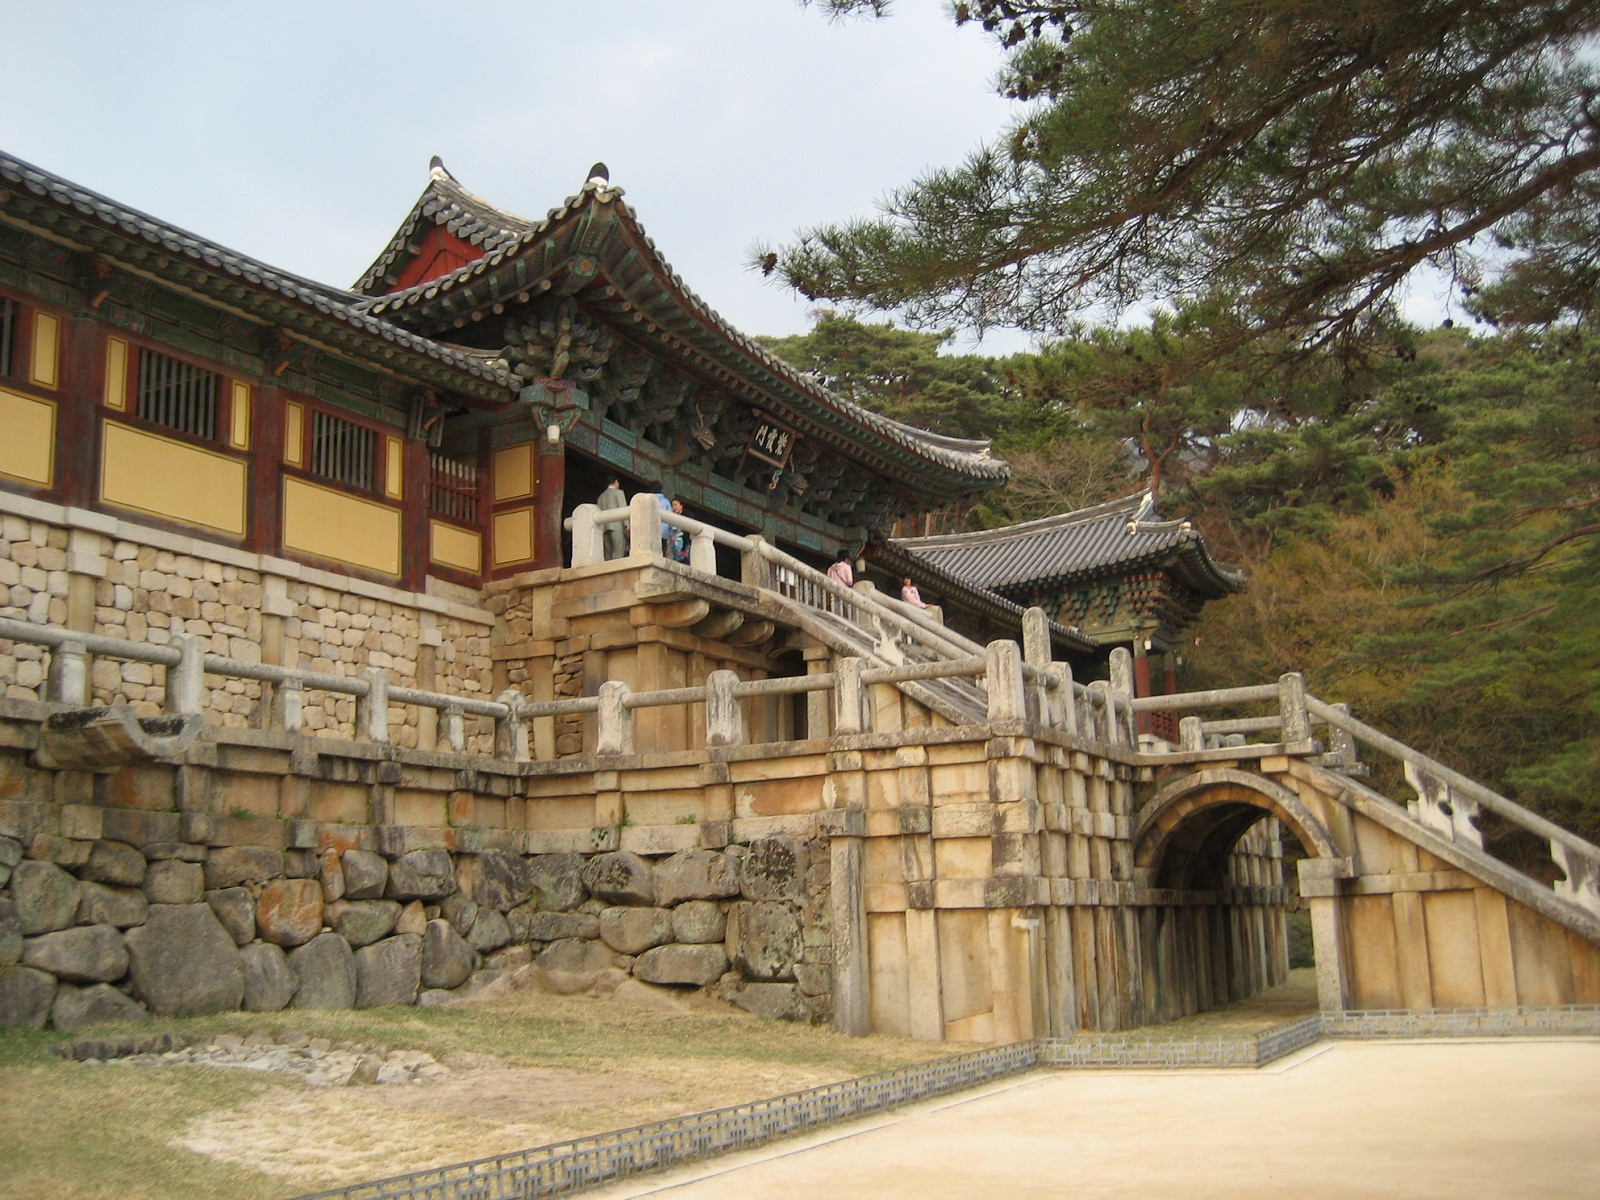 South Korea, Gyeongju, Bulguksa entrance